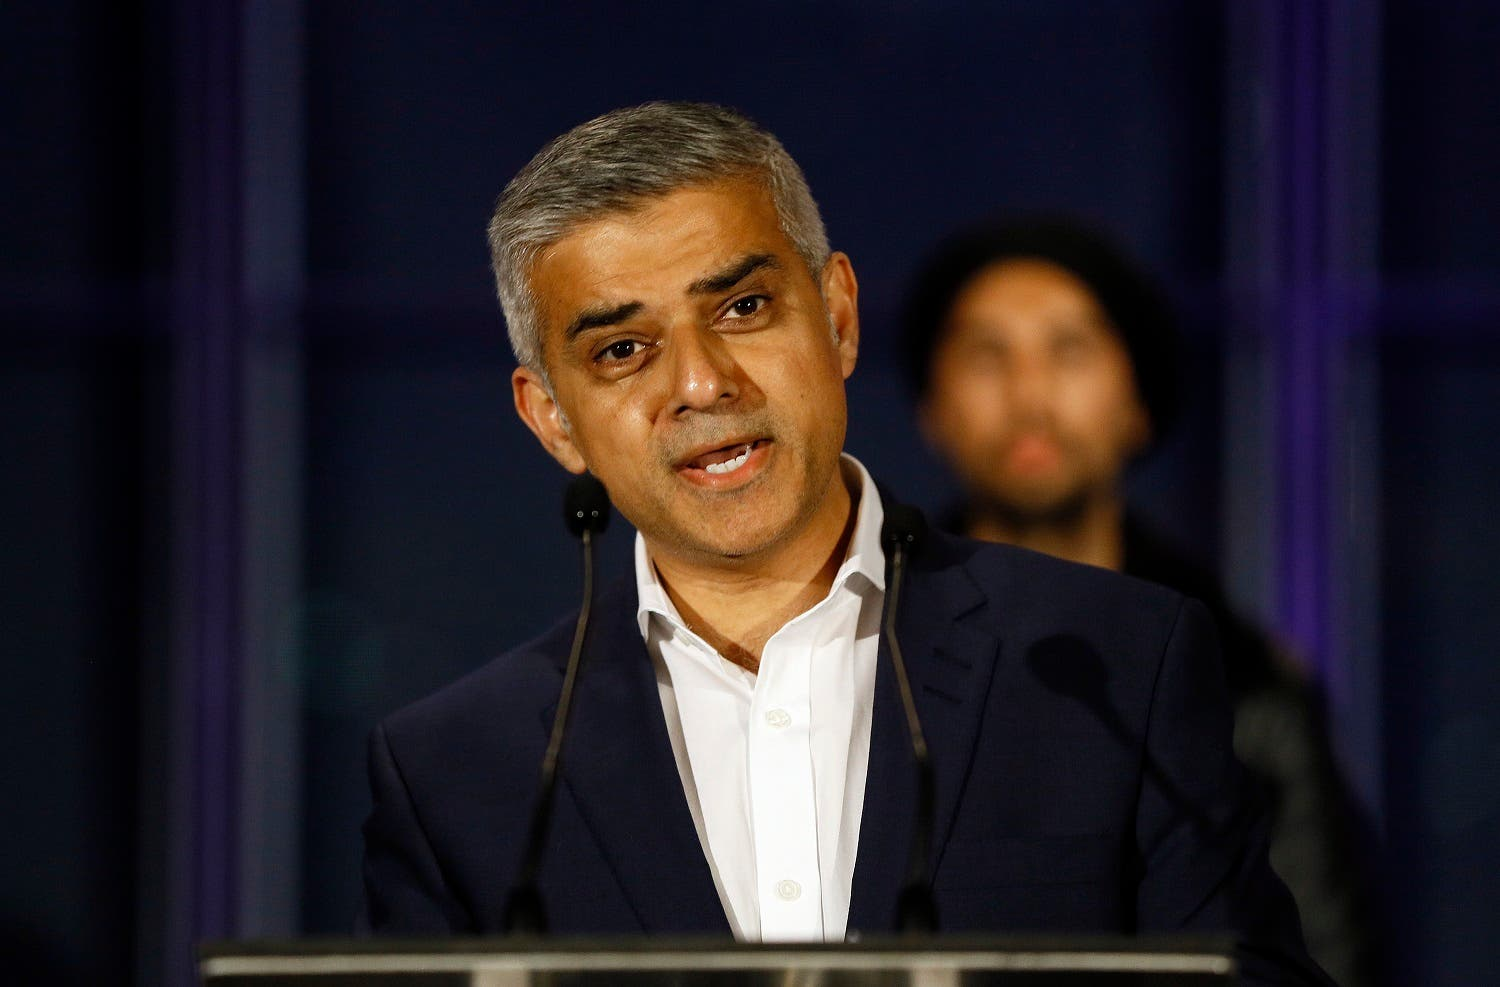 Sadiq Khan speaks on the podium after hearing the results of the London mayoral elections, at City Hall in London, Saturday, May 7, 2016. (AP Photo/Kirsty Wigglesworth)